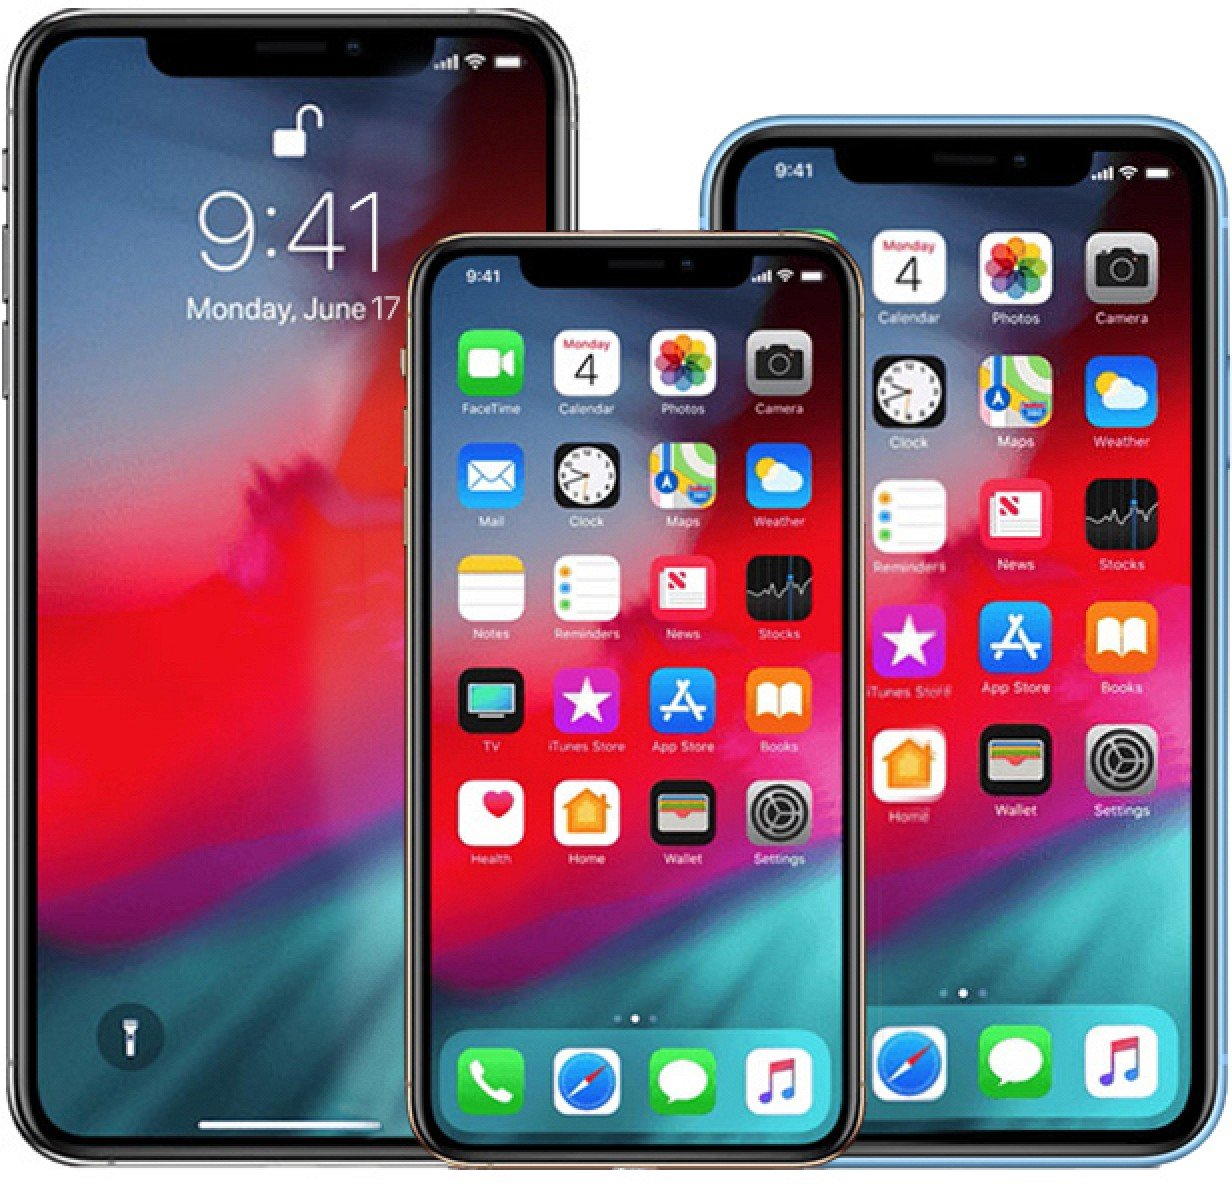 Tech News: Apple Expected to Release 5.4-Inch and 6.7-Inch iPhones With Thinner Displays in 2020 – MacRumors